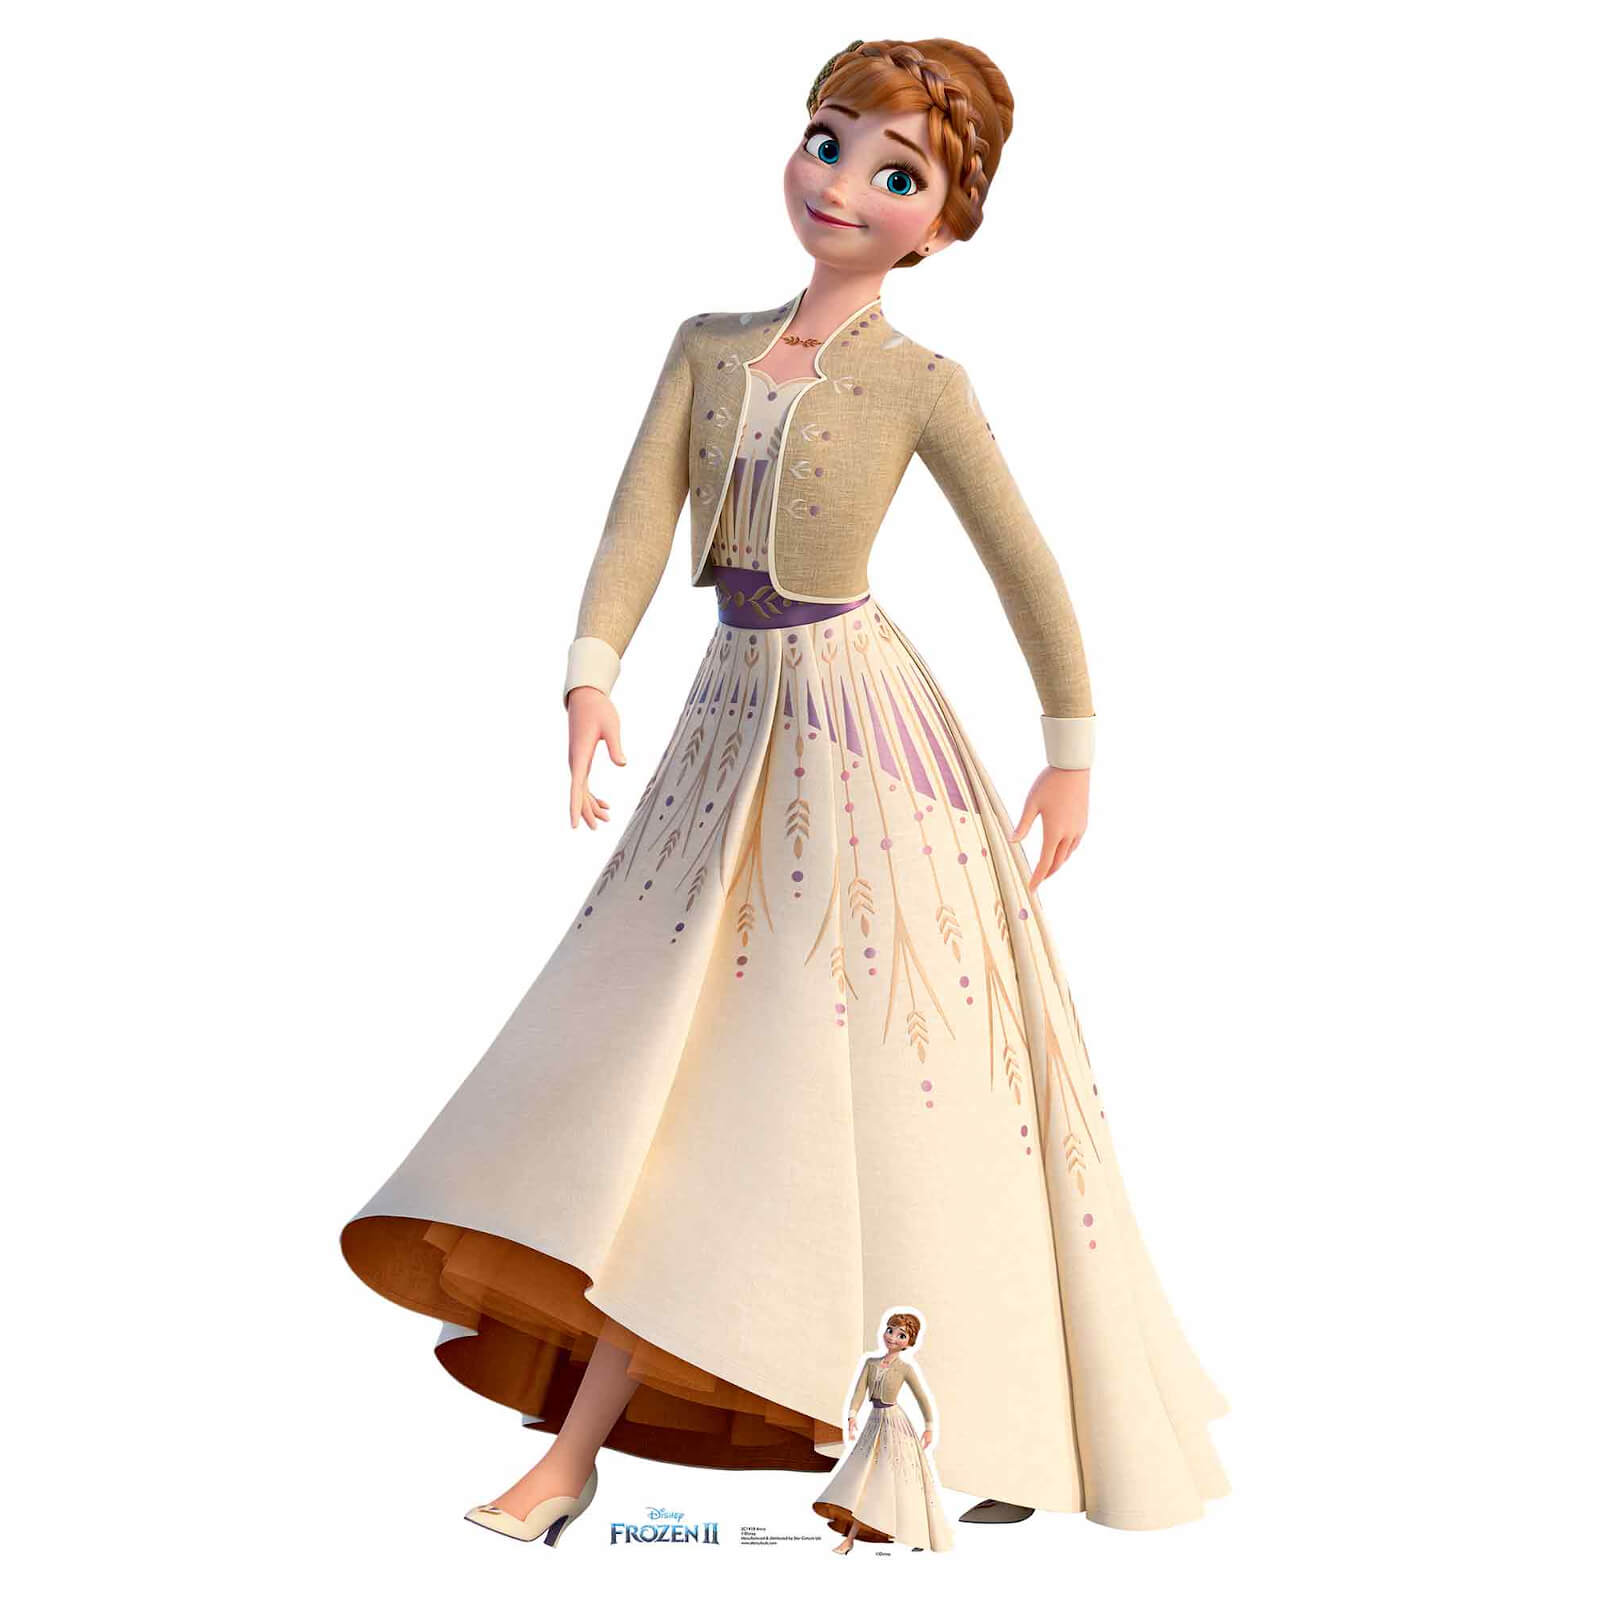 Image of Disney Frozen 2 Anna Lifesized Carboard Cut Out